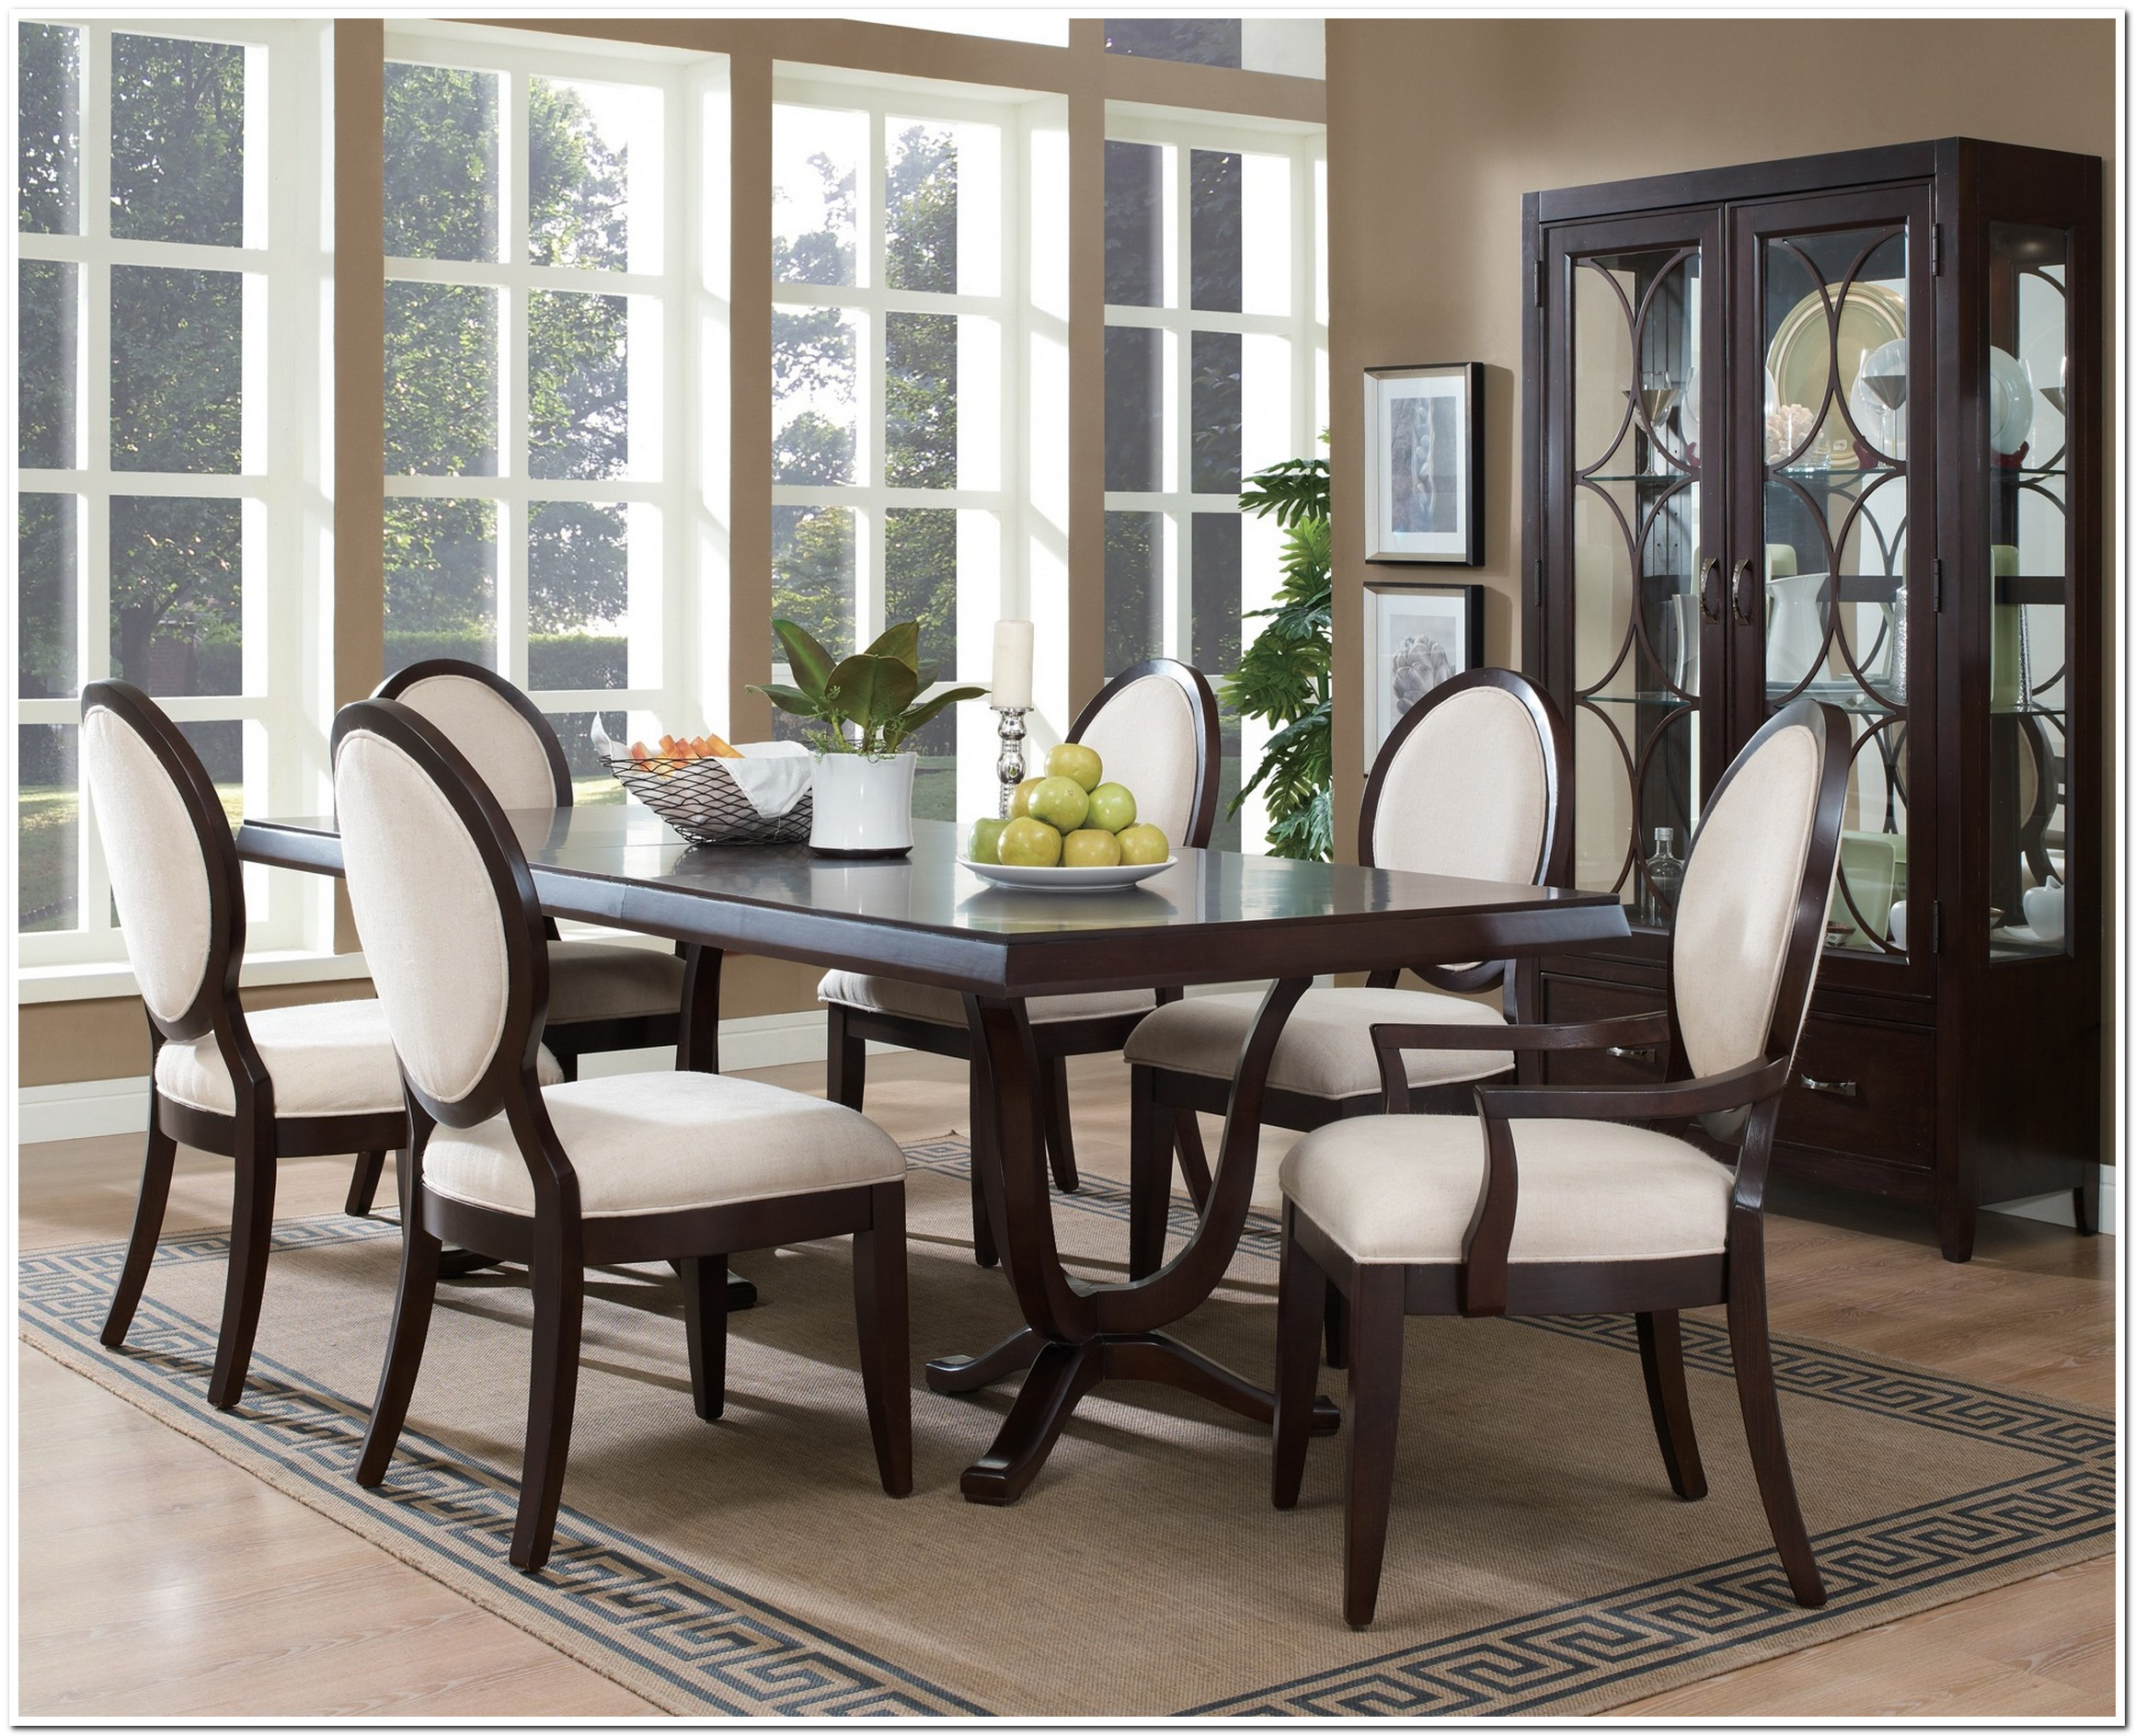 Know what dining room furniture sets you want to bring out for Dining room furnishings